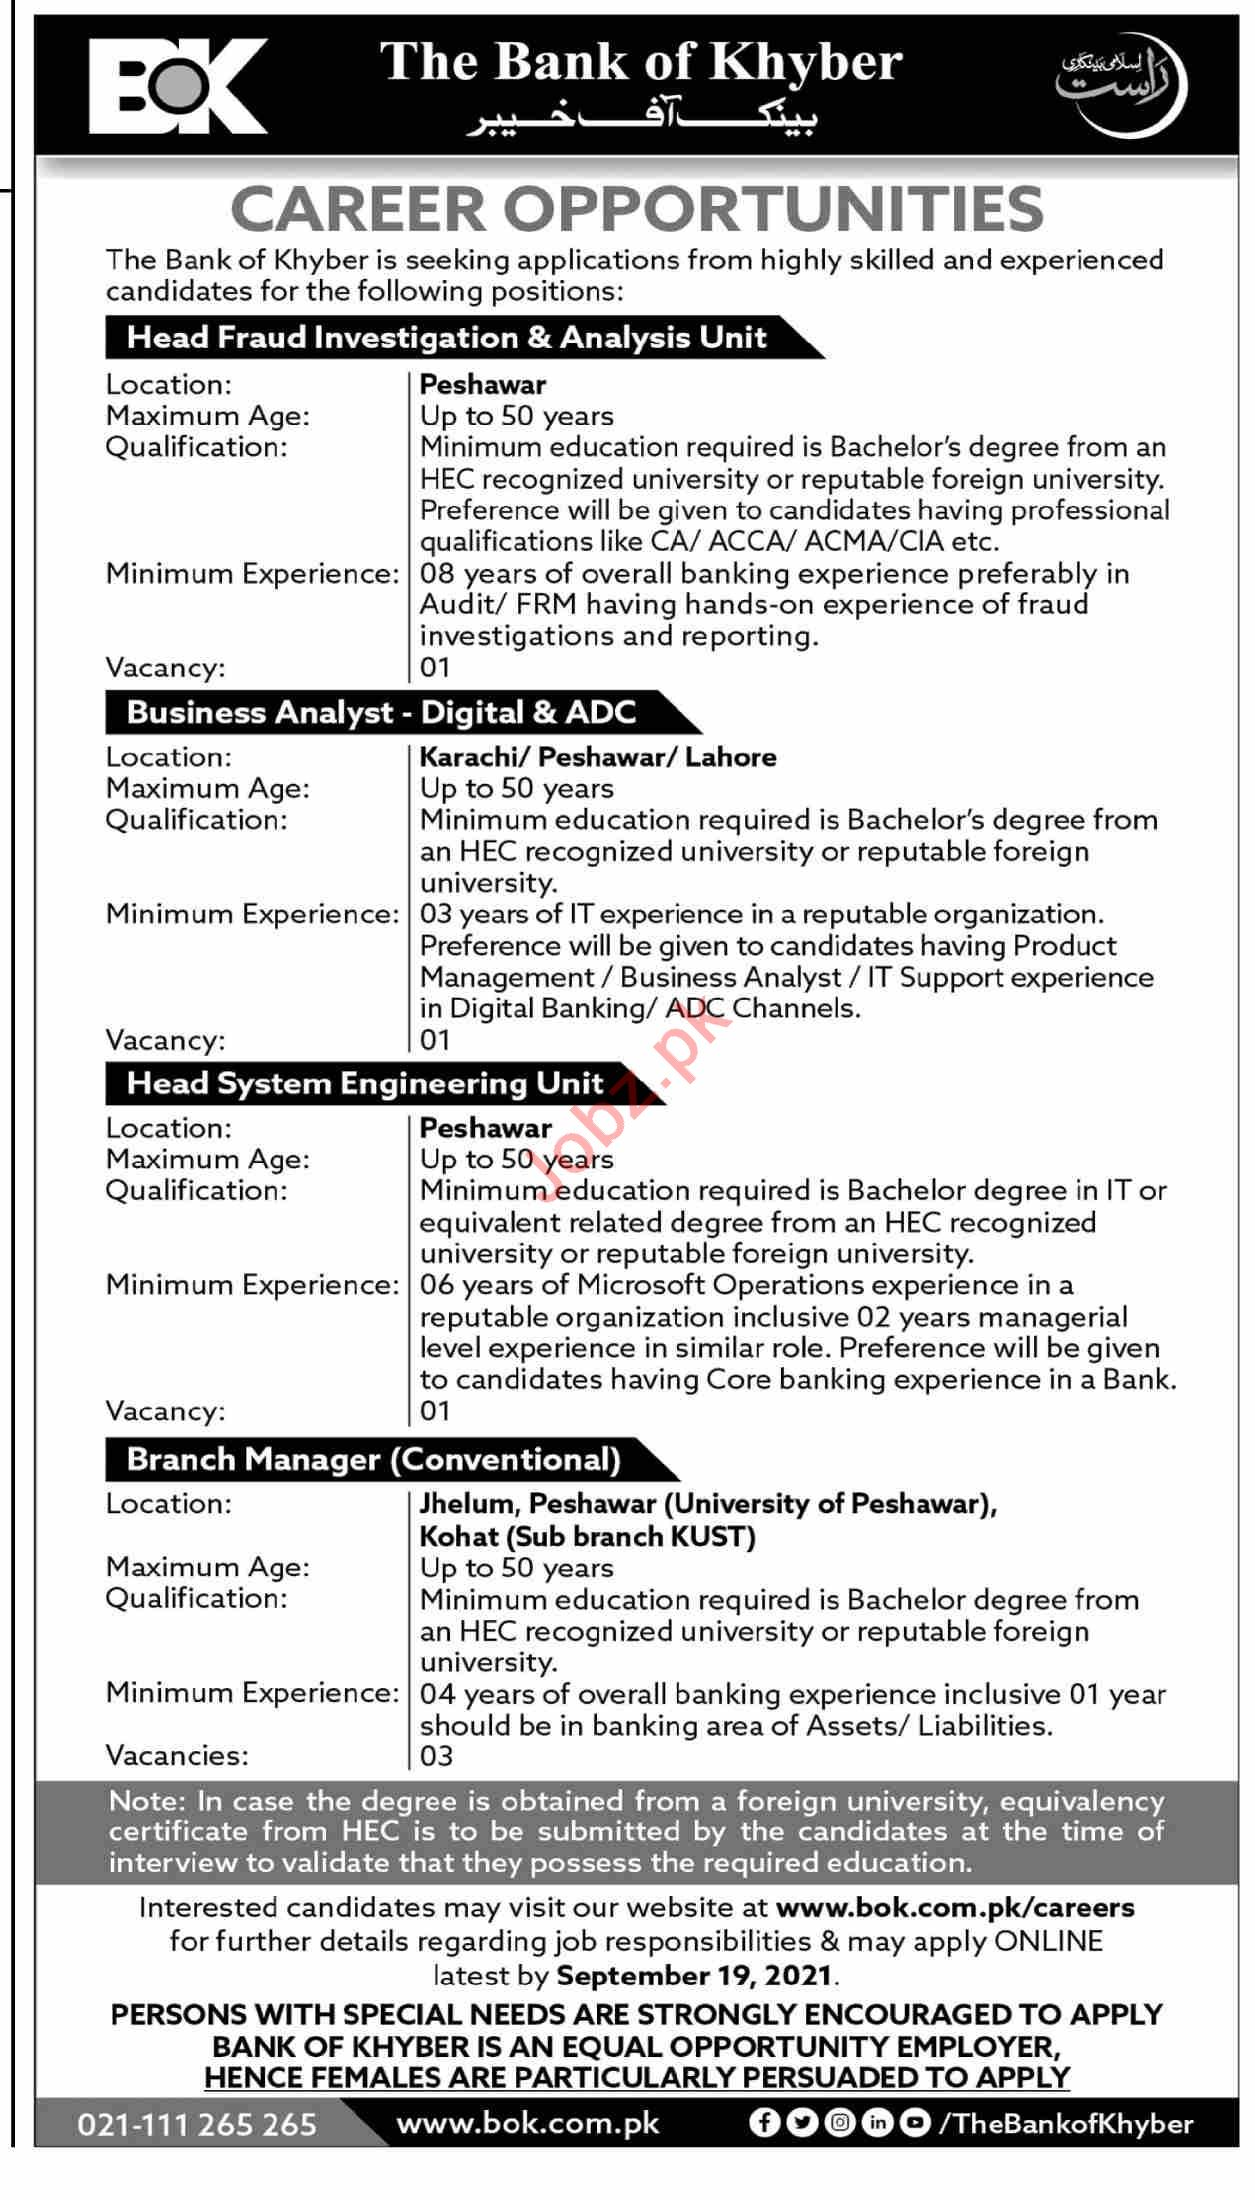 Bank of Khyber BOK Jobs 2021 for Head Fraud Investigation